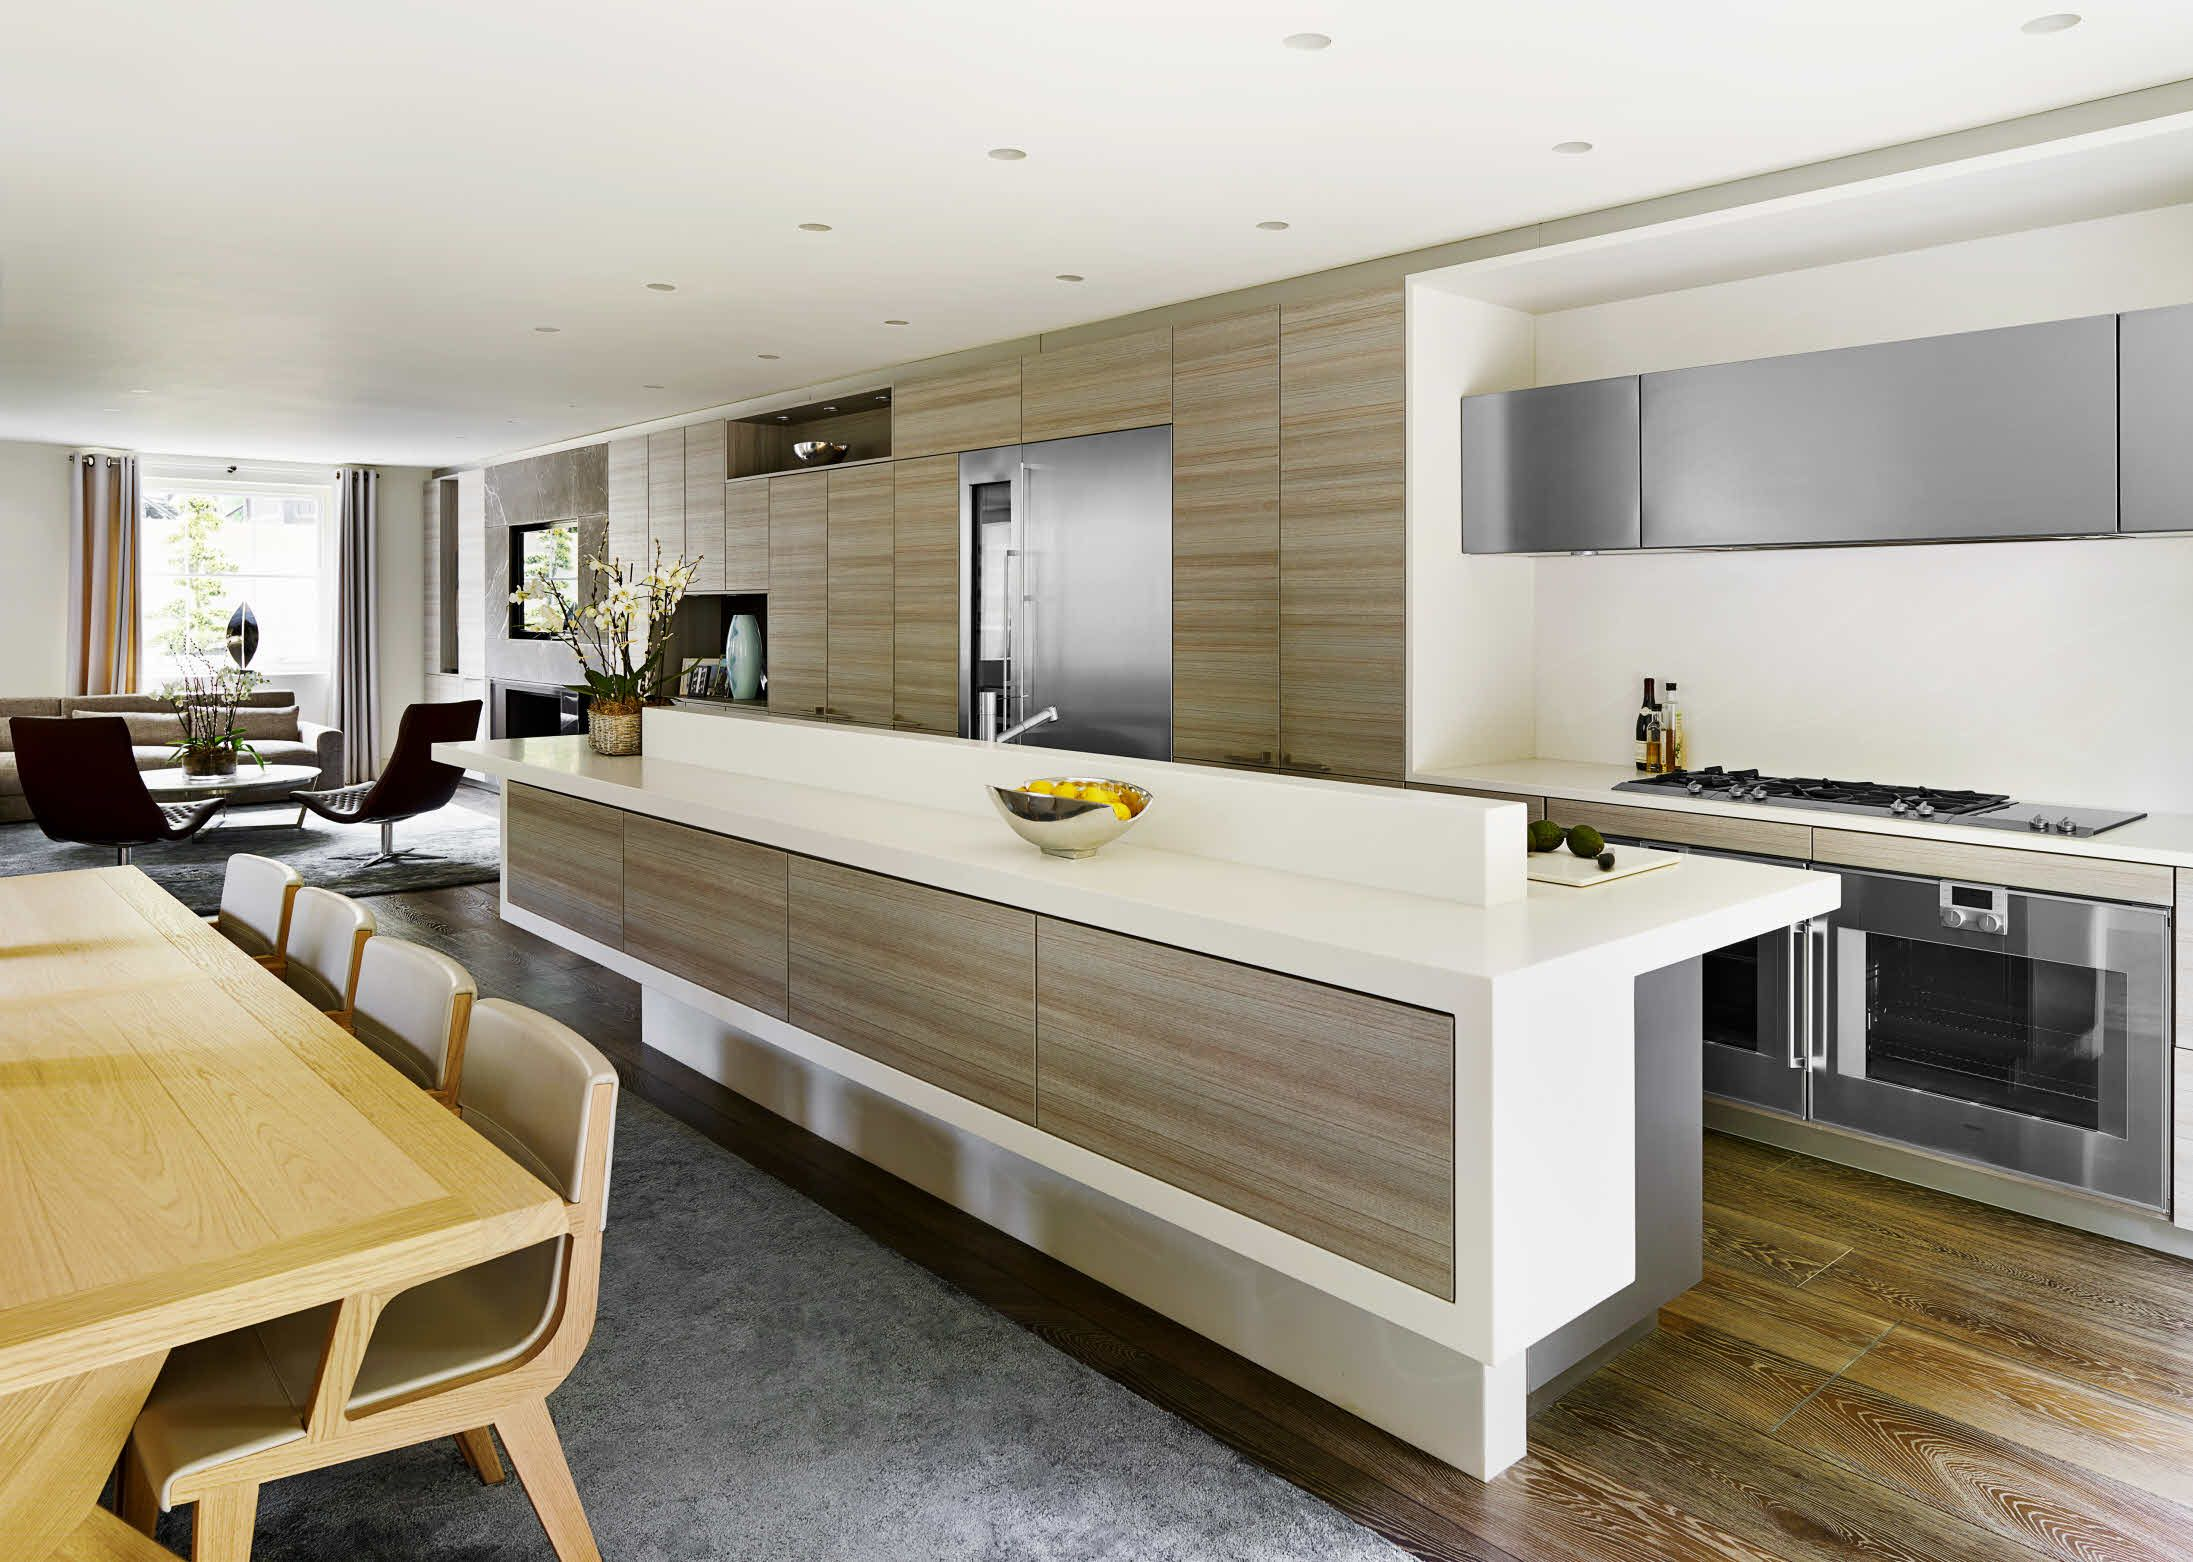 Beautiful The Poggenpohl +SEGMENTO Units And Cabinets Extend The Full Length Of One  Wall, With